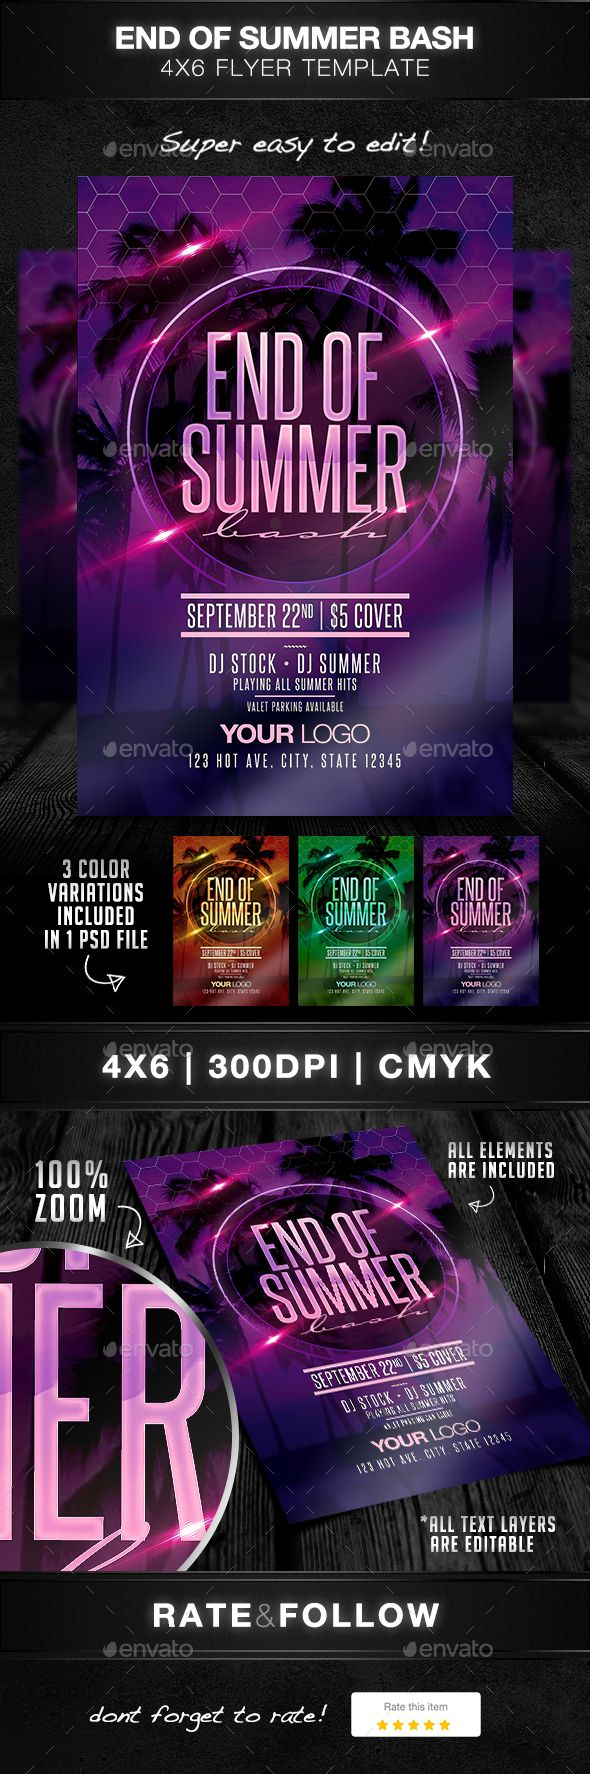 End Of Summer Bash Flyer Template PSD. Download here: https://graphicriver.net/item/end-of-summer-bash-flyer-template/17209824?ref=ksioks